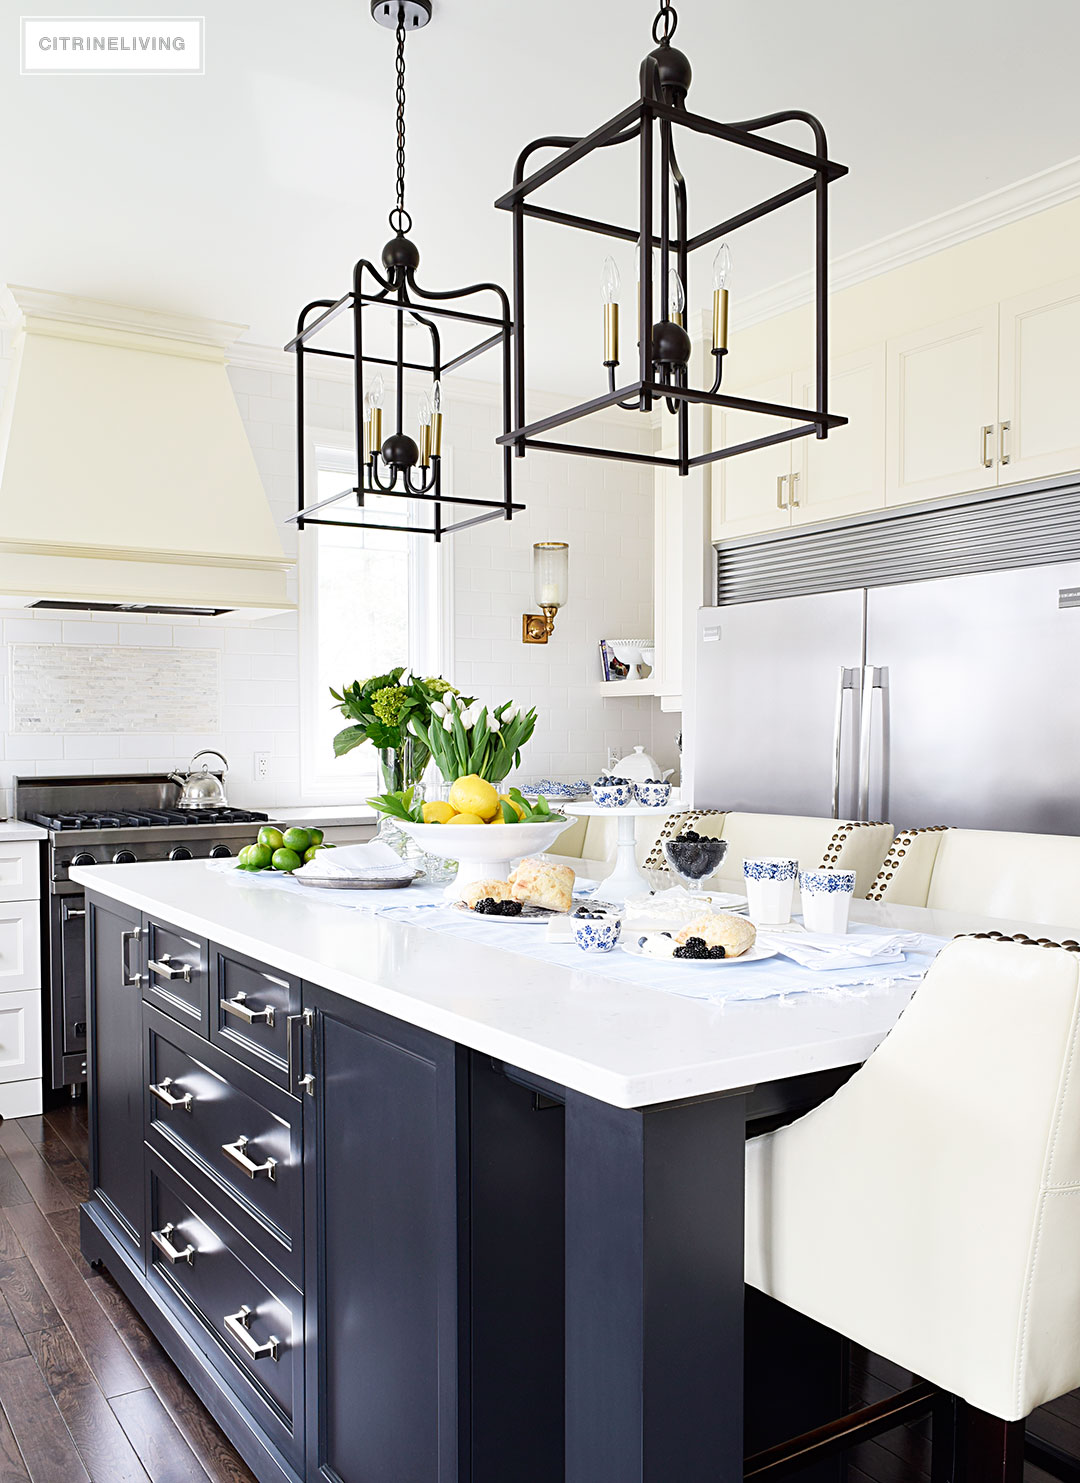 A white kitchen with a welcoming tablescape of blue and white accented with fresh flowers, lemons and limes.